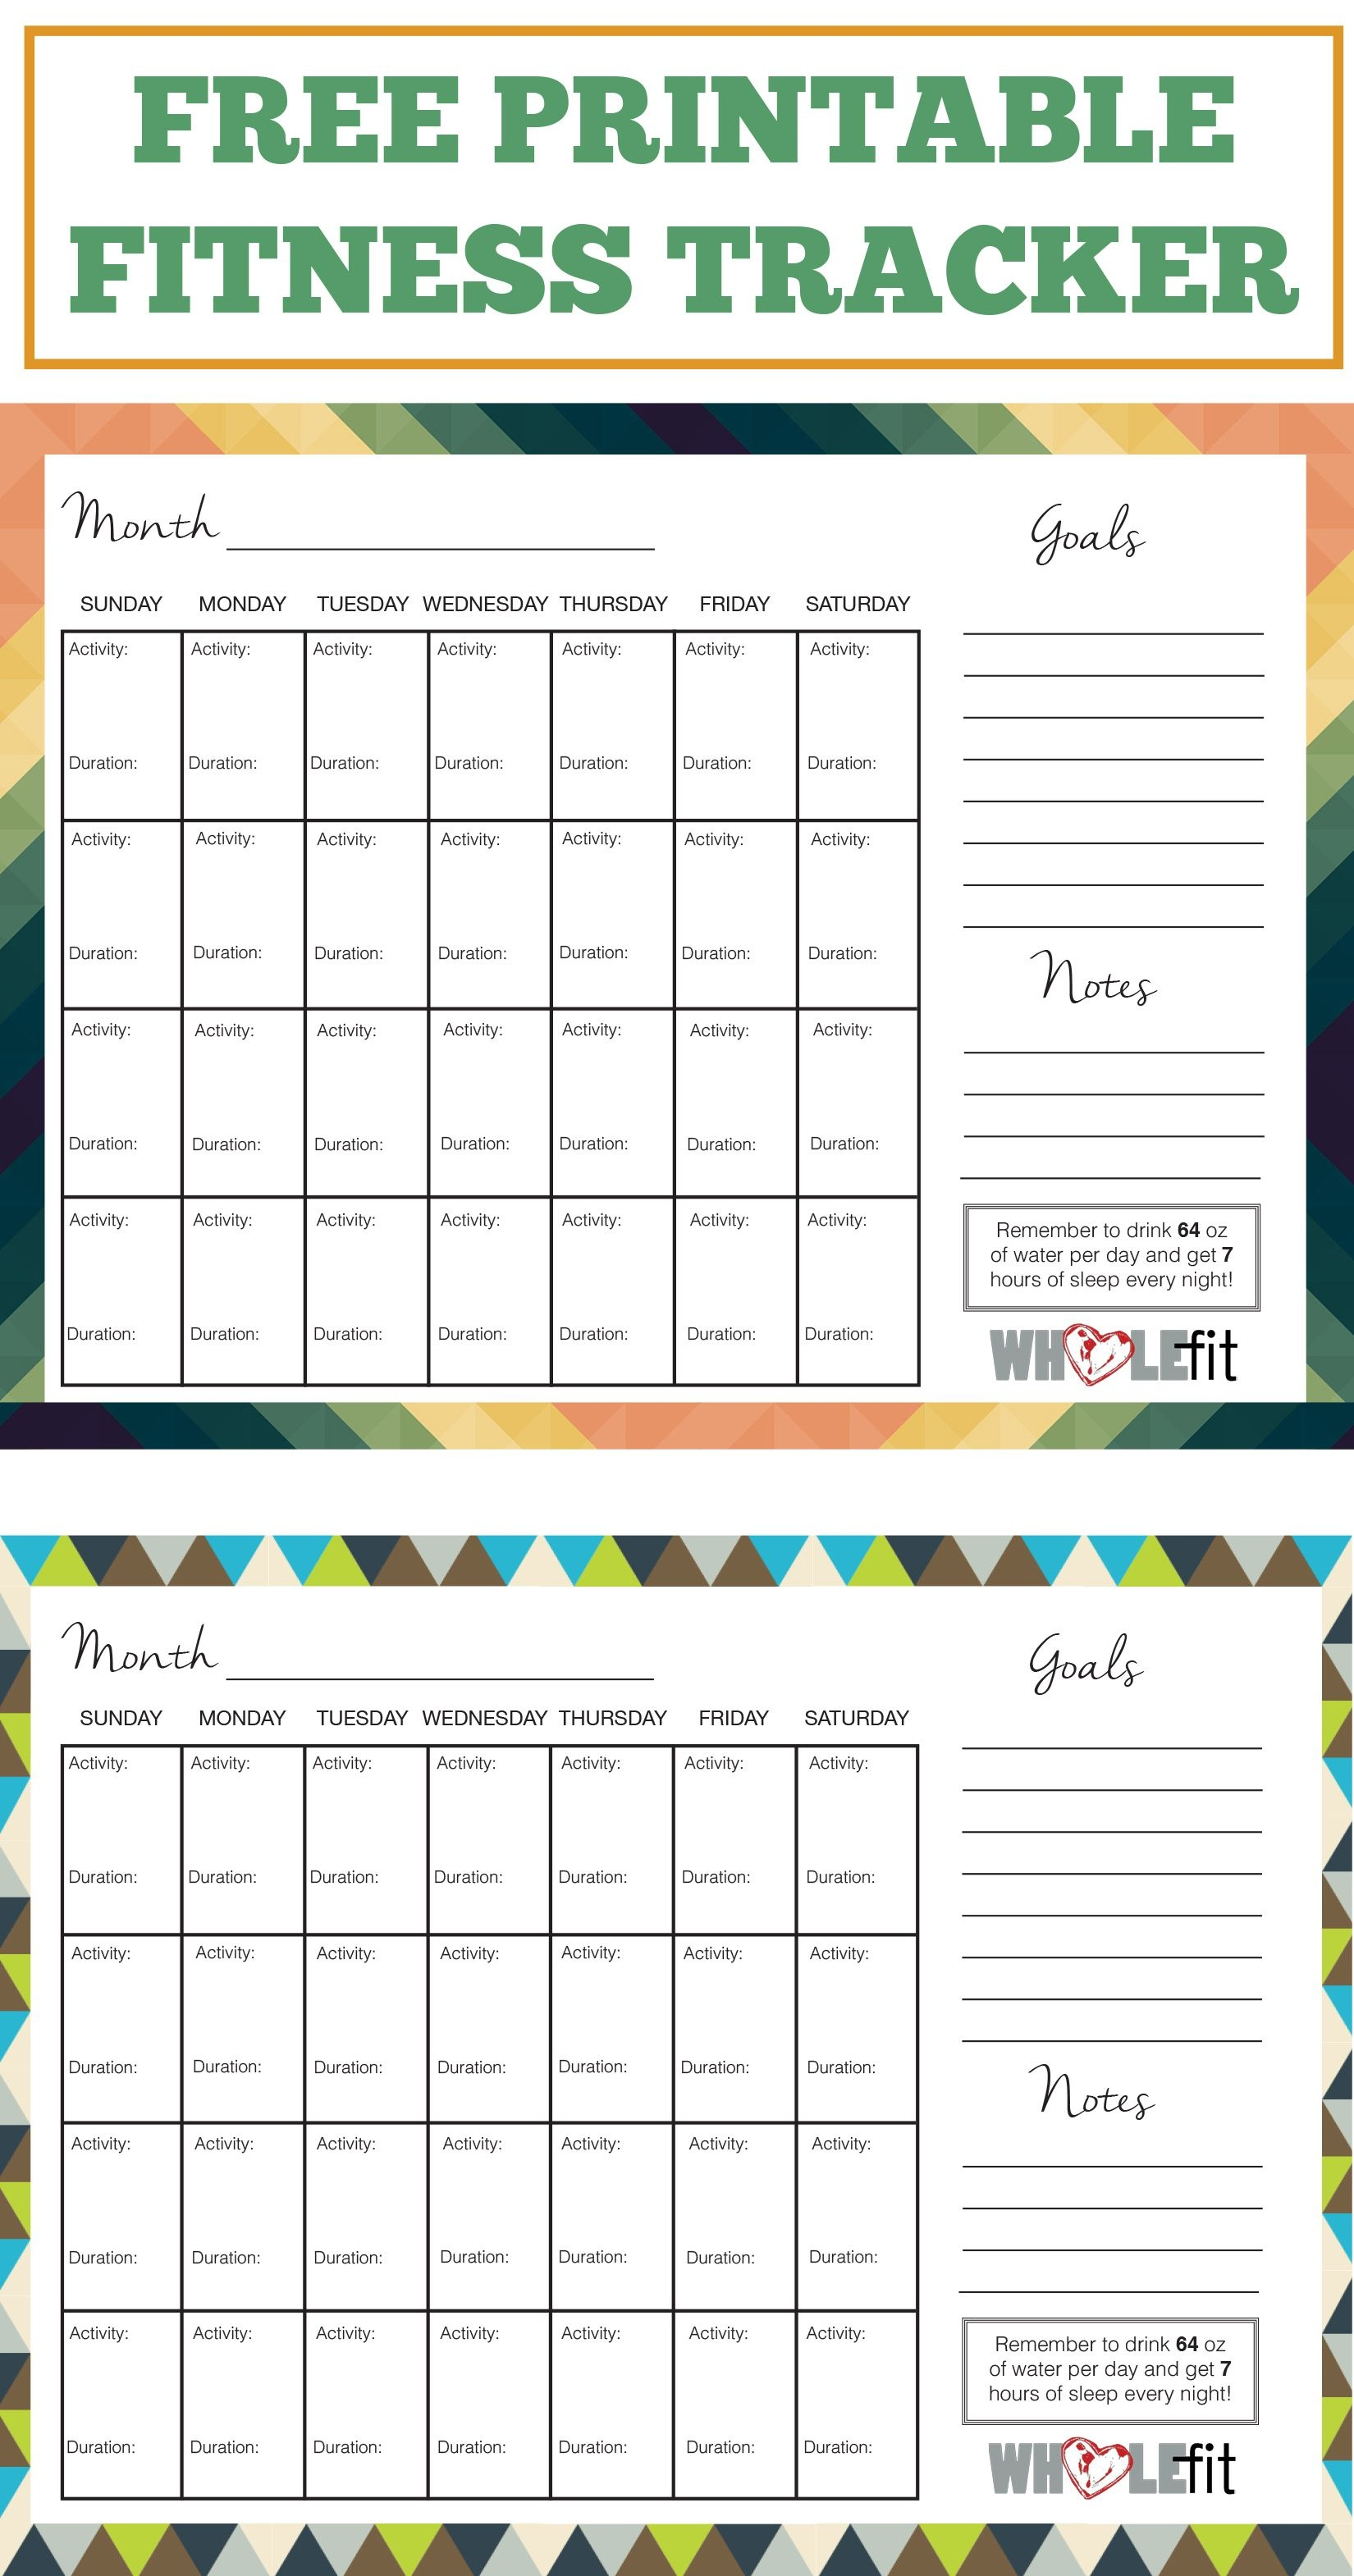 Track Your Progress With These Free Printable Fitness Trackers!   My - Free Printable Fitness Worksheets